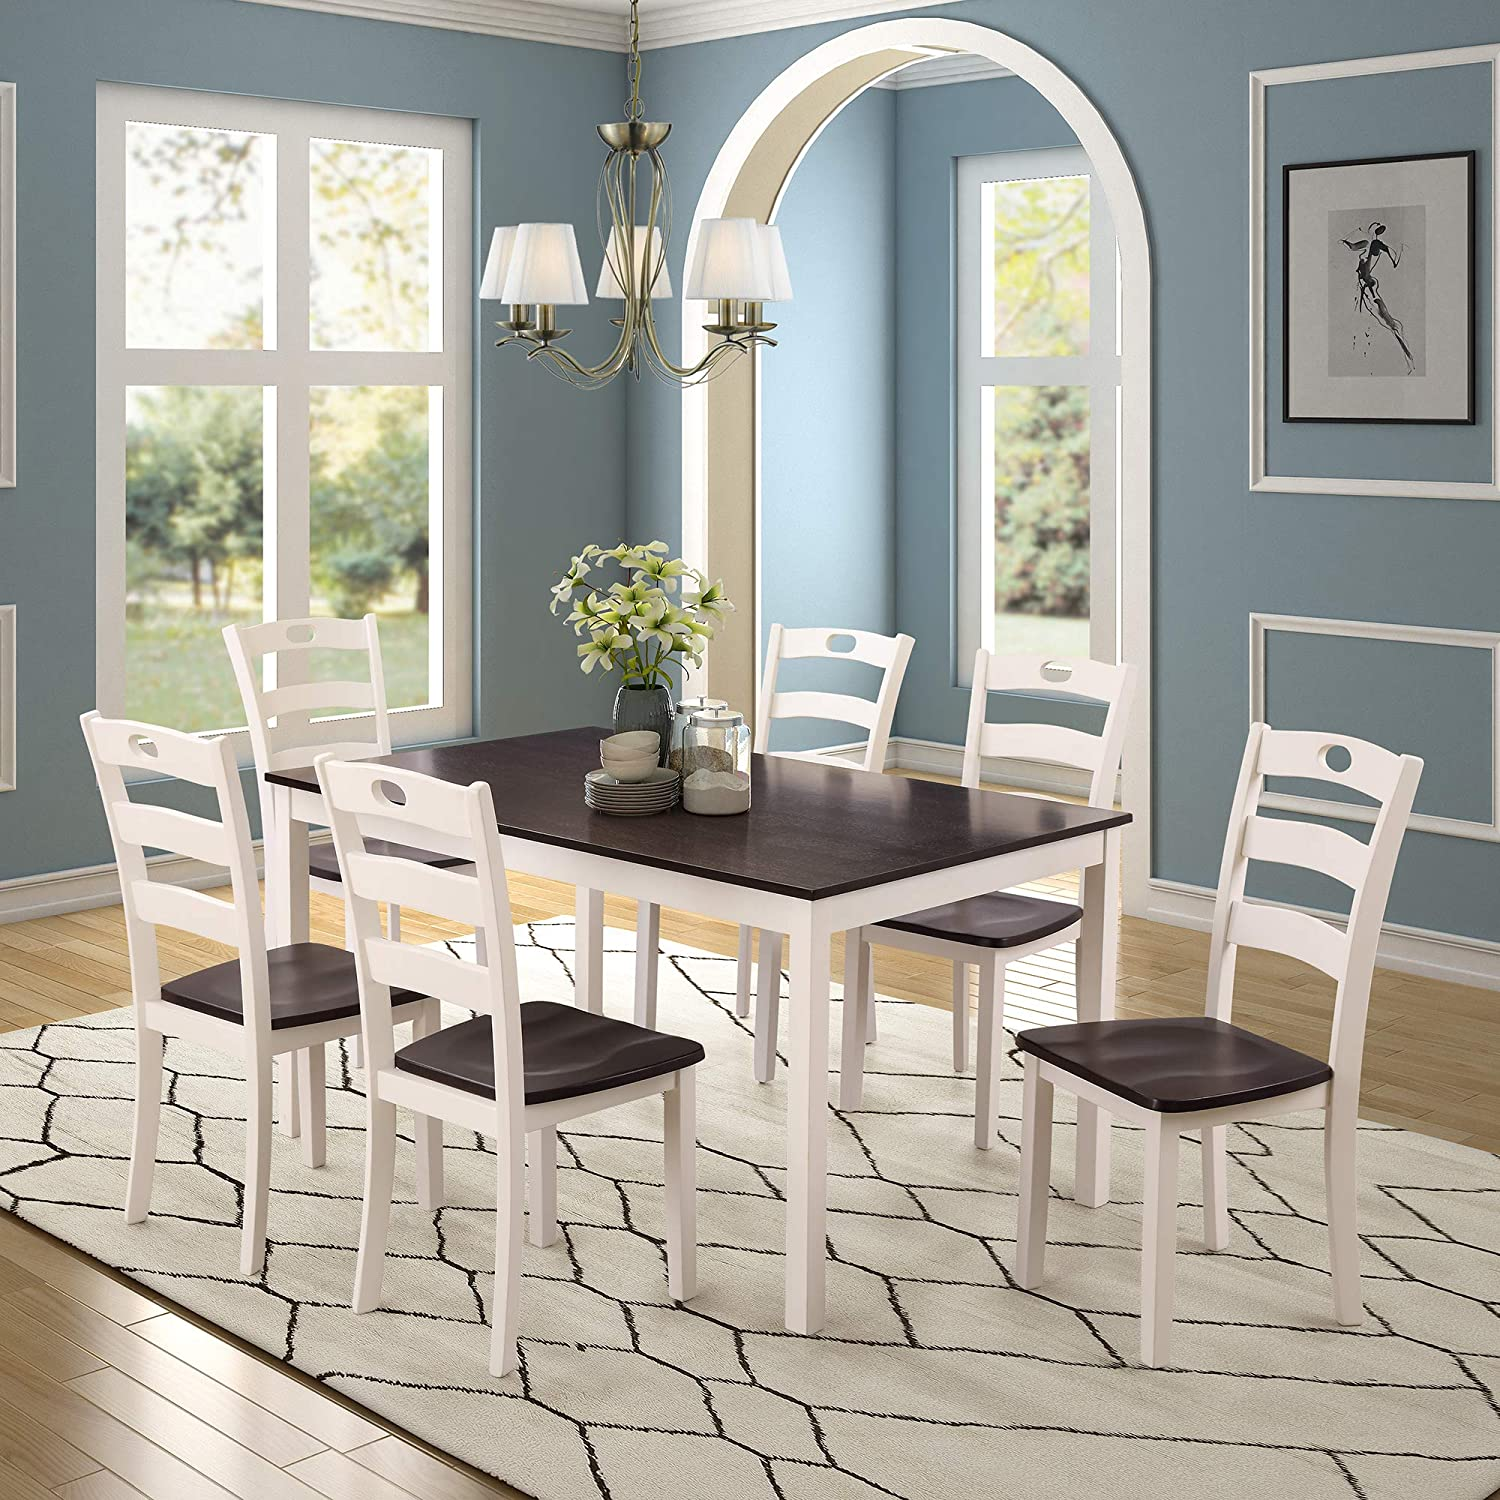 Cungon Online 7 Pieces Dining Table Set with Rectangular Wood Table and 6 Chairs Kitchen Dining Room Furniture White and Espresso